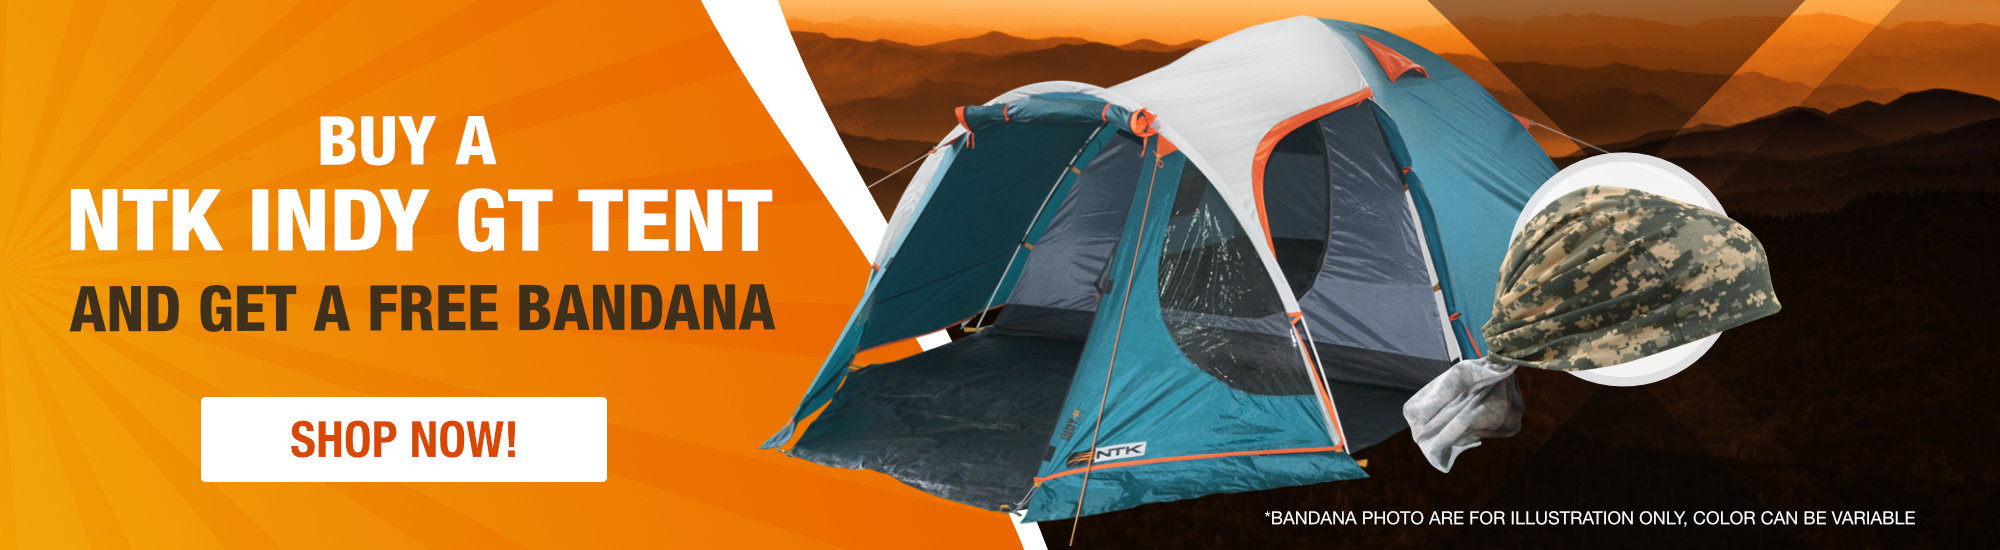 Buy a NTK Indt GT Tent and get a free bandana!